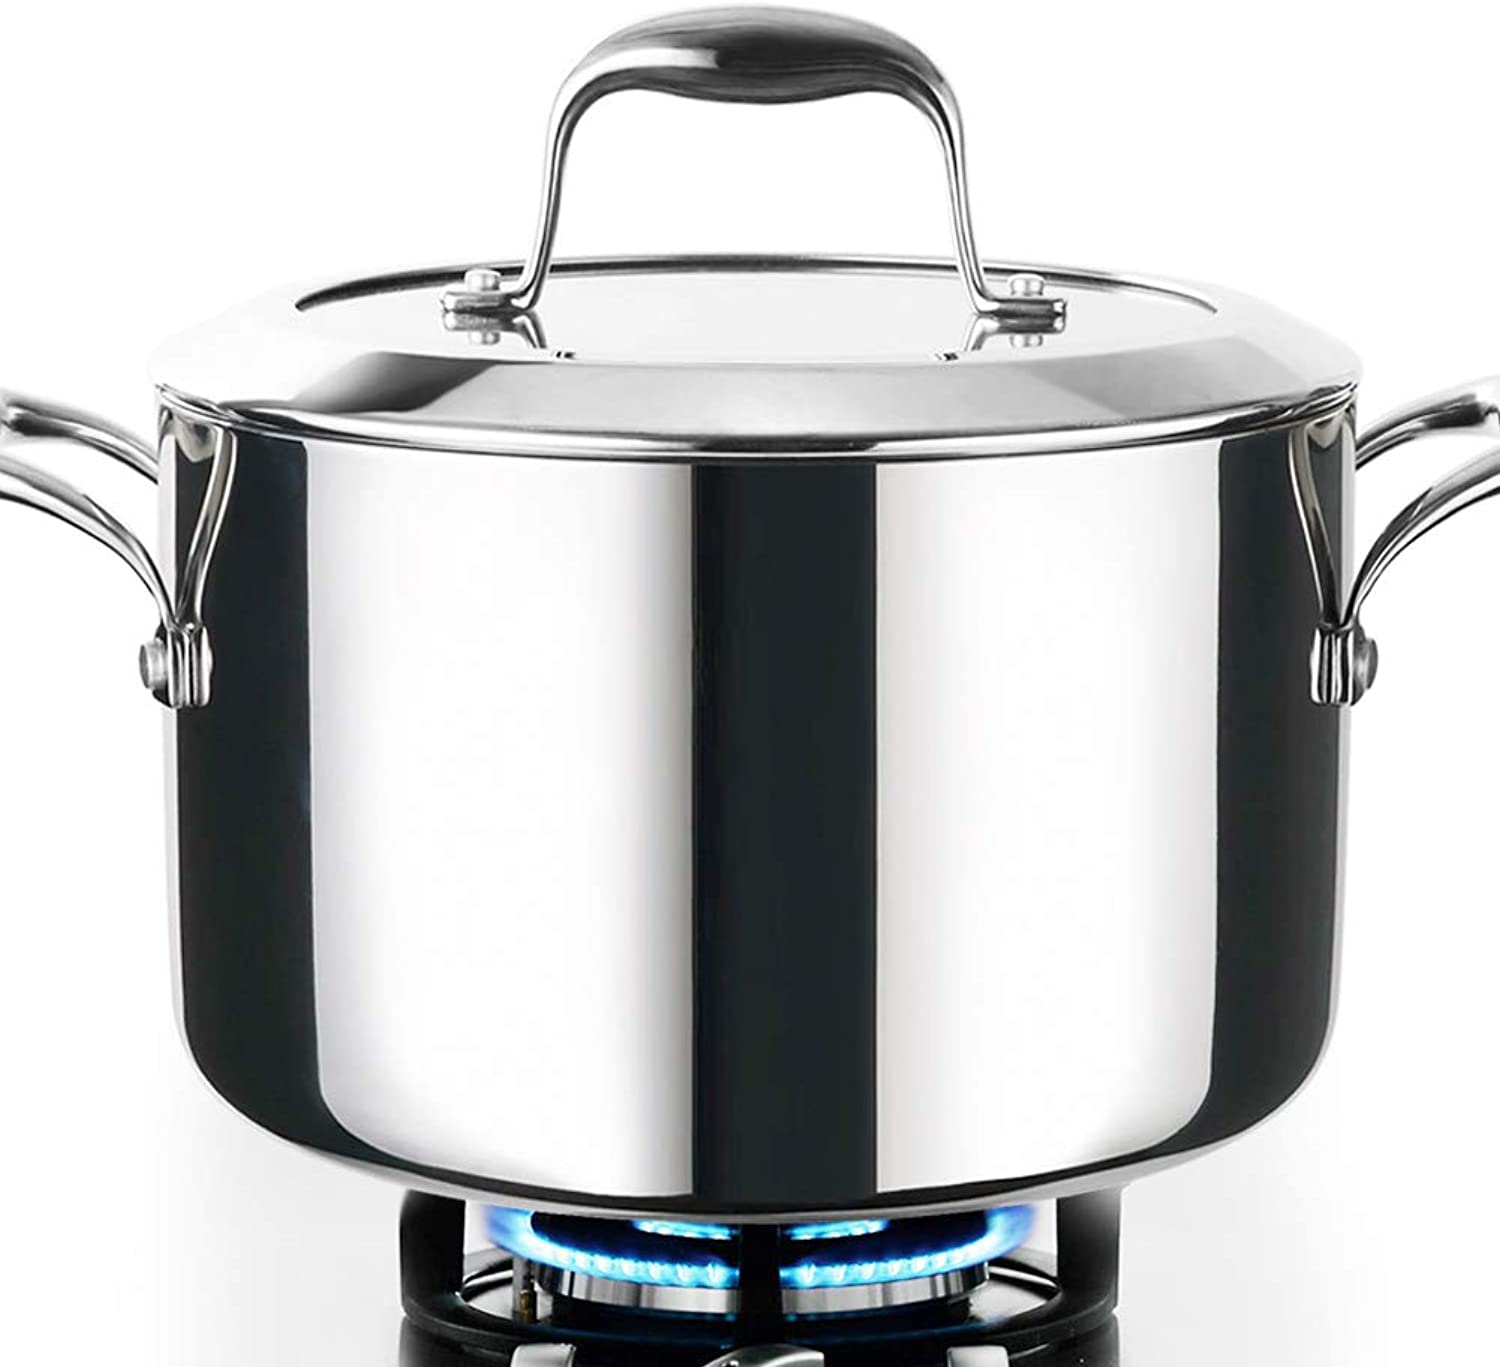 HOMI CHEF Mirror Polished NICKEL FREE Stainless Steel 6 QT(Quart) Stock Pot Soup Pot with Glass Lid (No Toxic Non Stick Coating, Whole-Clad 3-Ply) - Cookware Pots And Pans Sets 10121